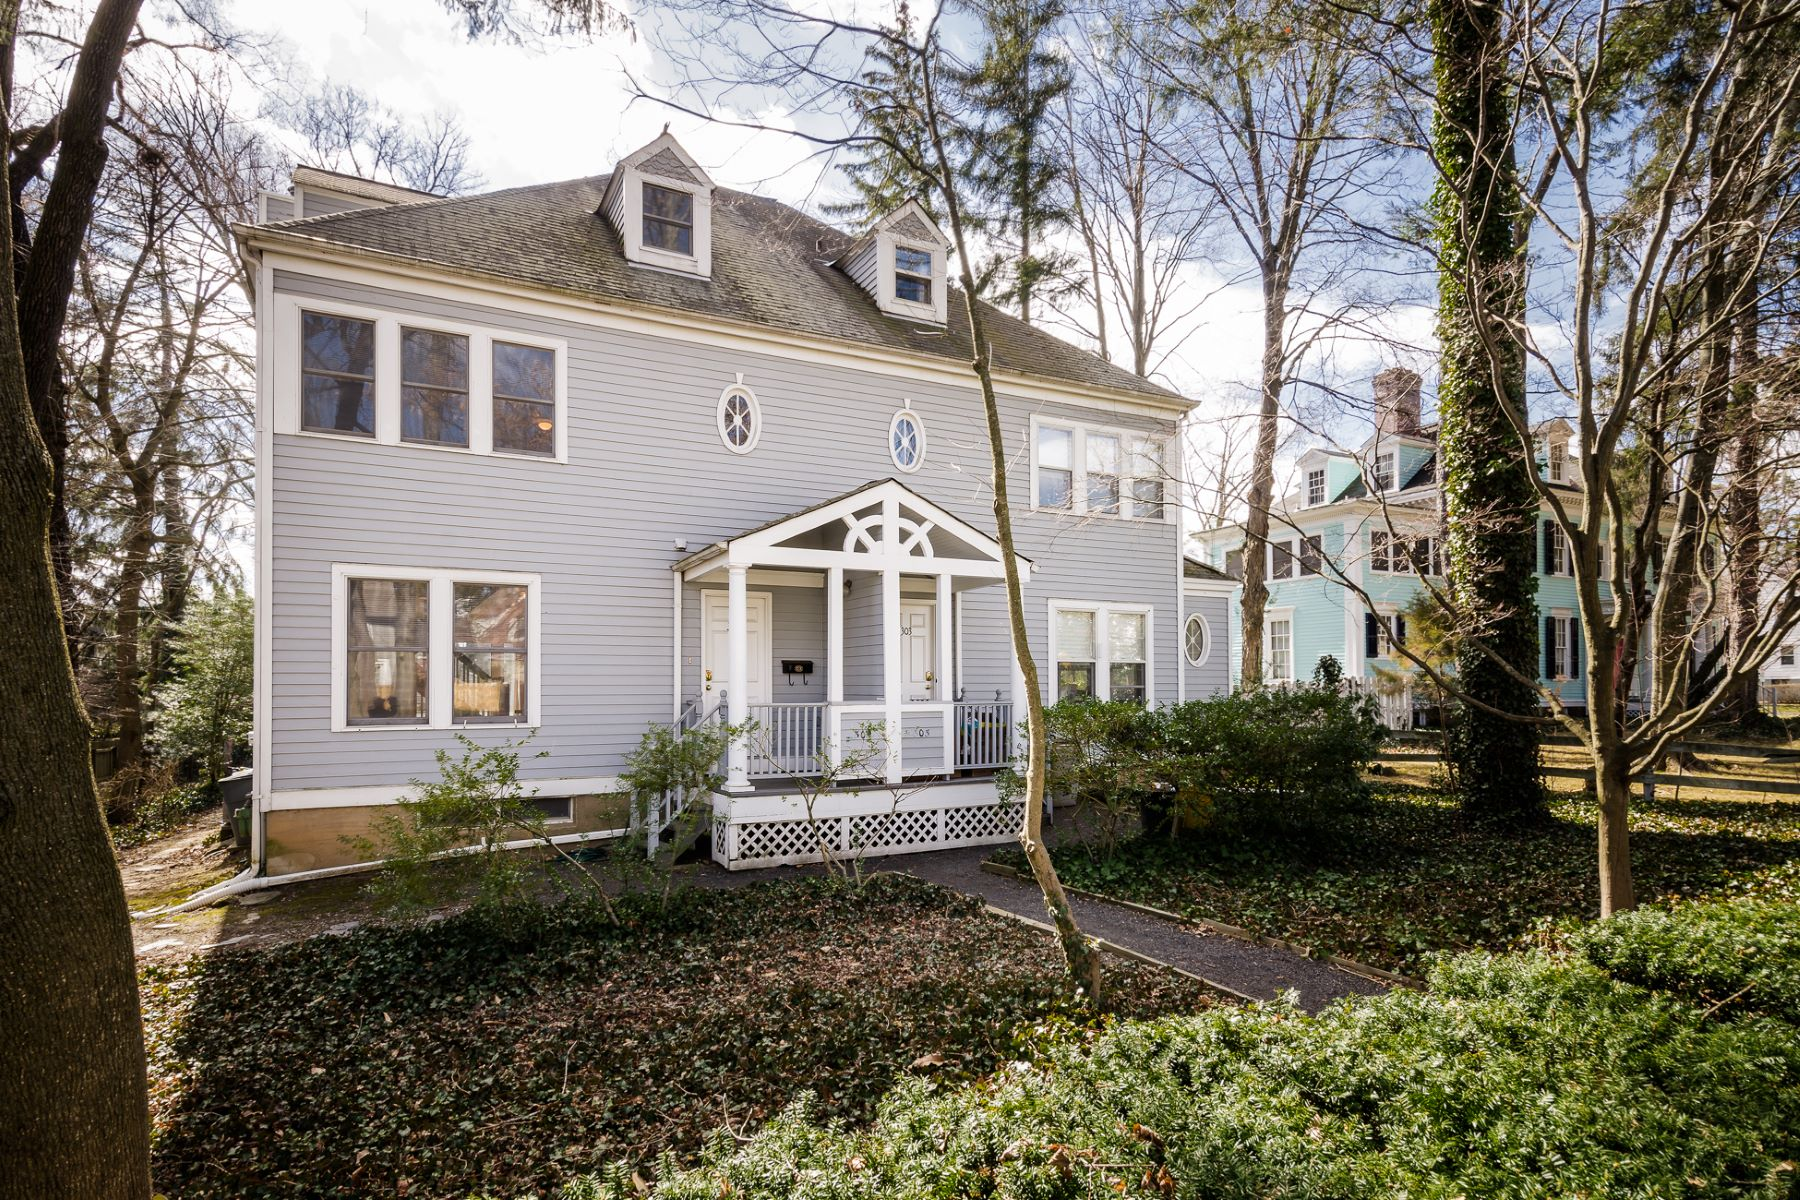 Single Family Home for Sale at Sunny Townhome, Perfectly Poised on Nassau Street 305 Nassau Street Princeton, New Jersey 08540 United States